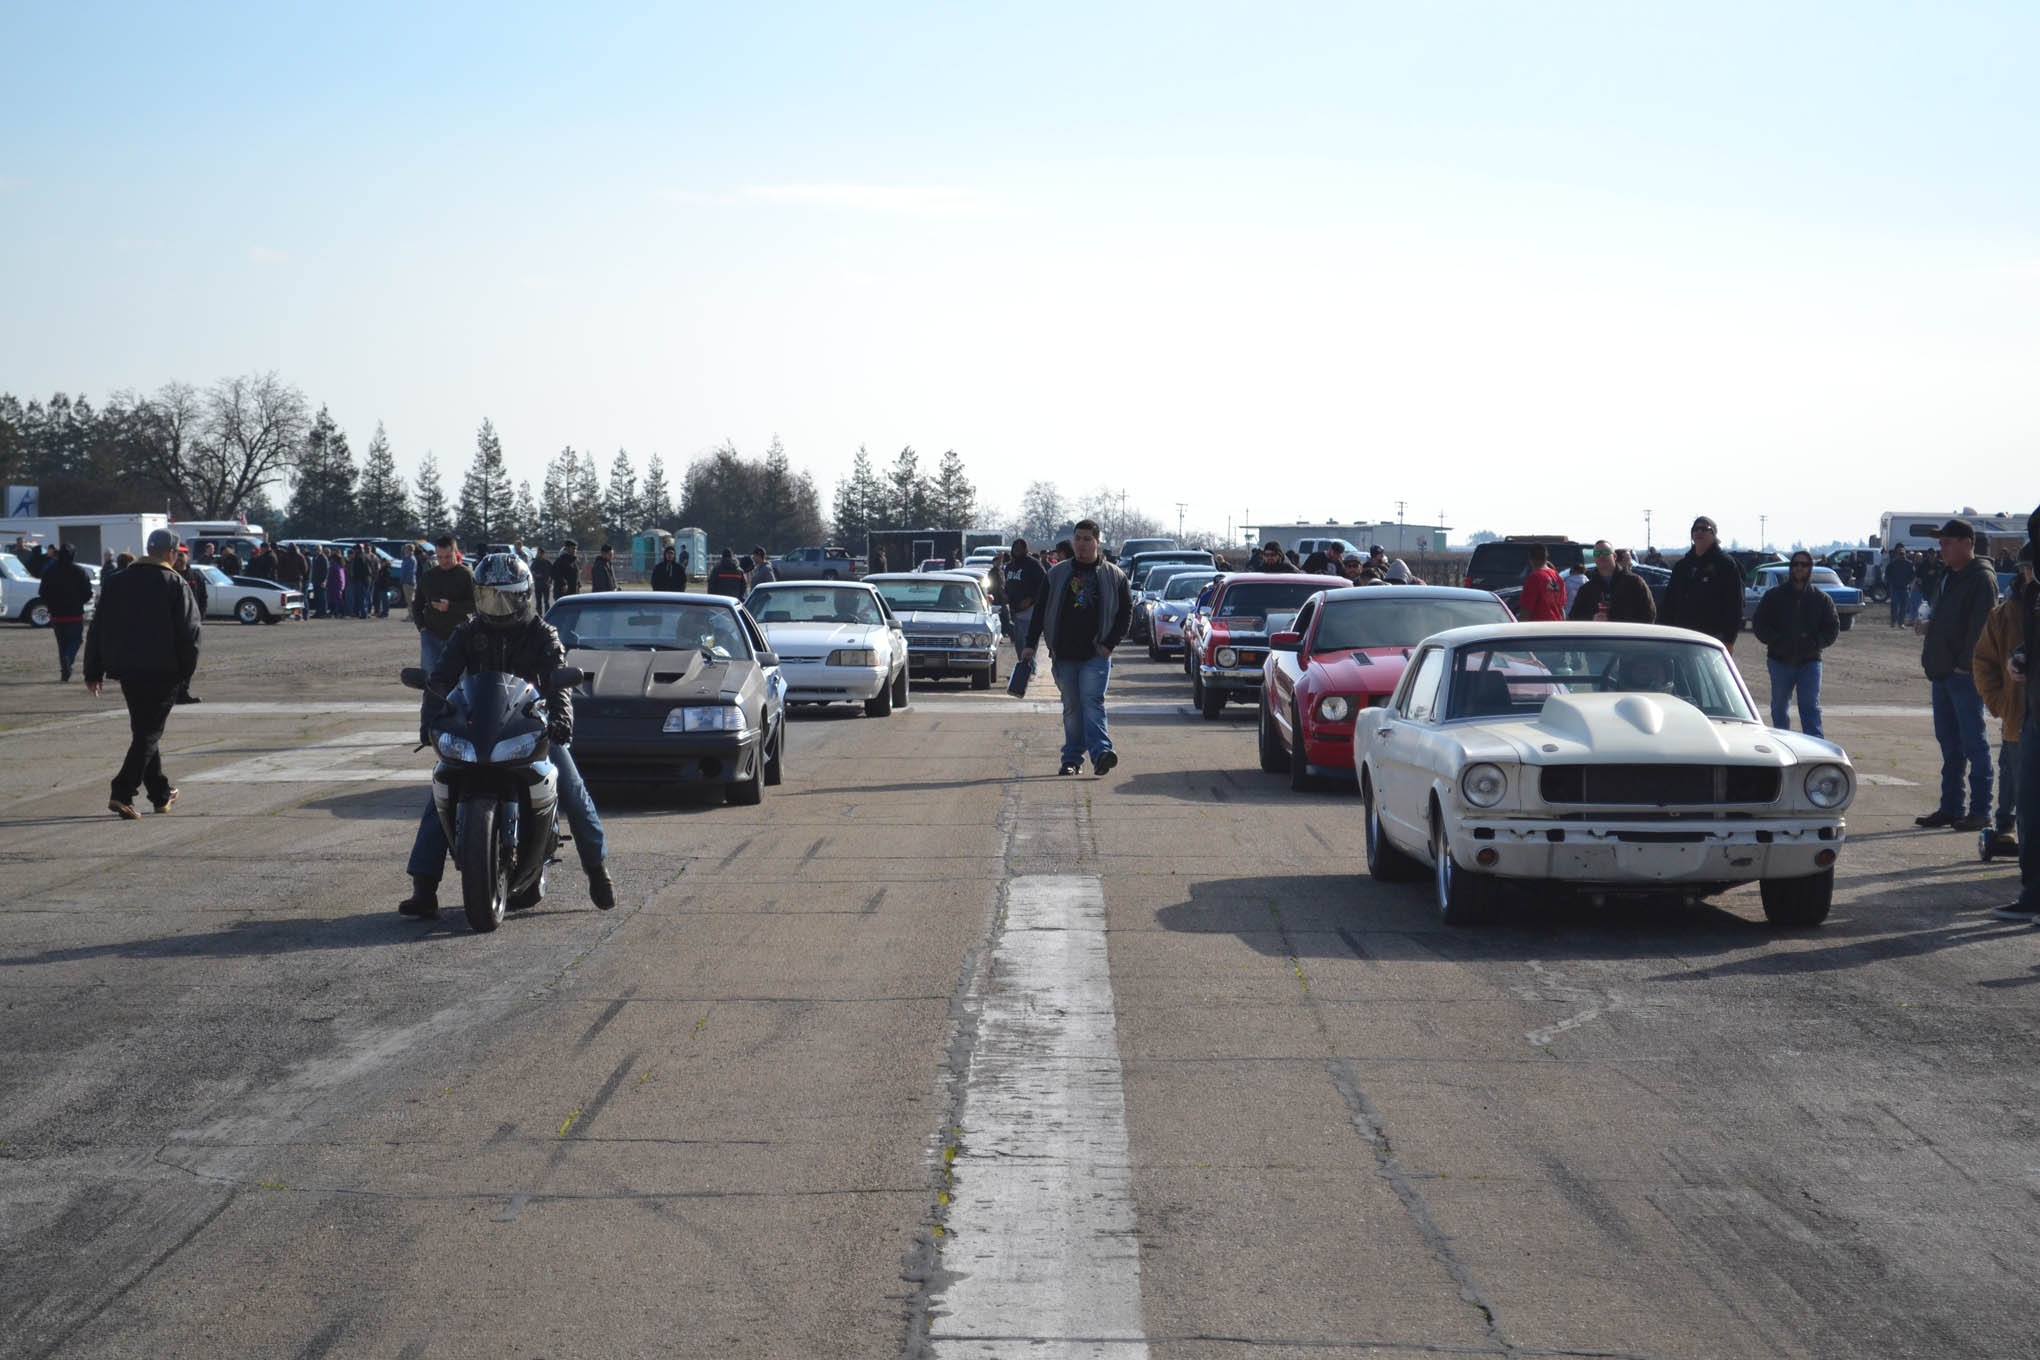 The pairings in an event like the Kingdon airstrip drags can be quite interesting. In the left lane, a road-race-style, twin-turbo LS Mustang (that put down 750 hp to the tires) would be taking on a street bike. The winner? Thanks to traction issues with the Mustang, the bike took the win.